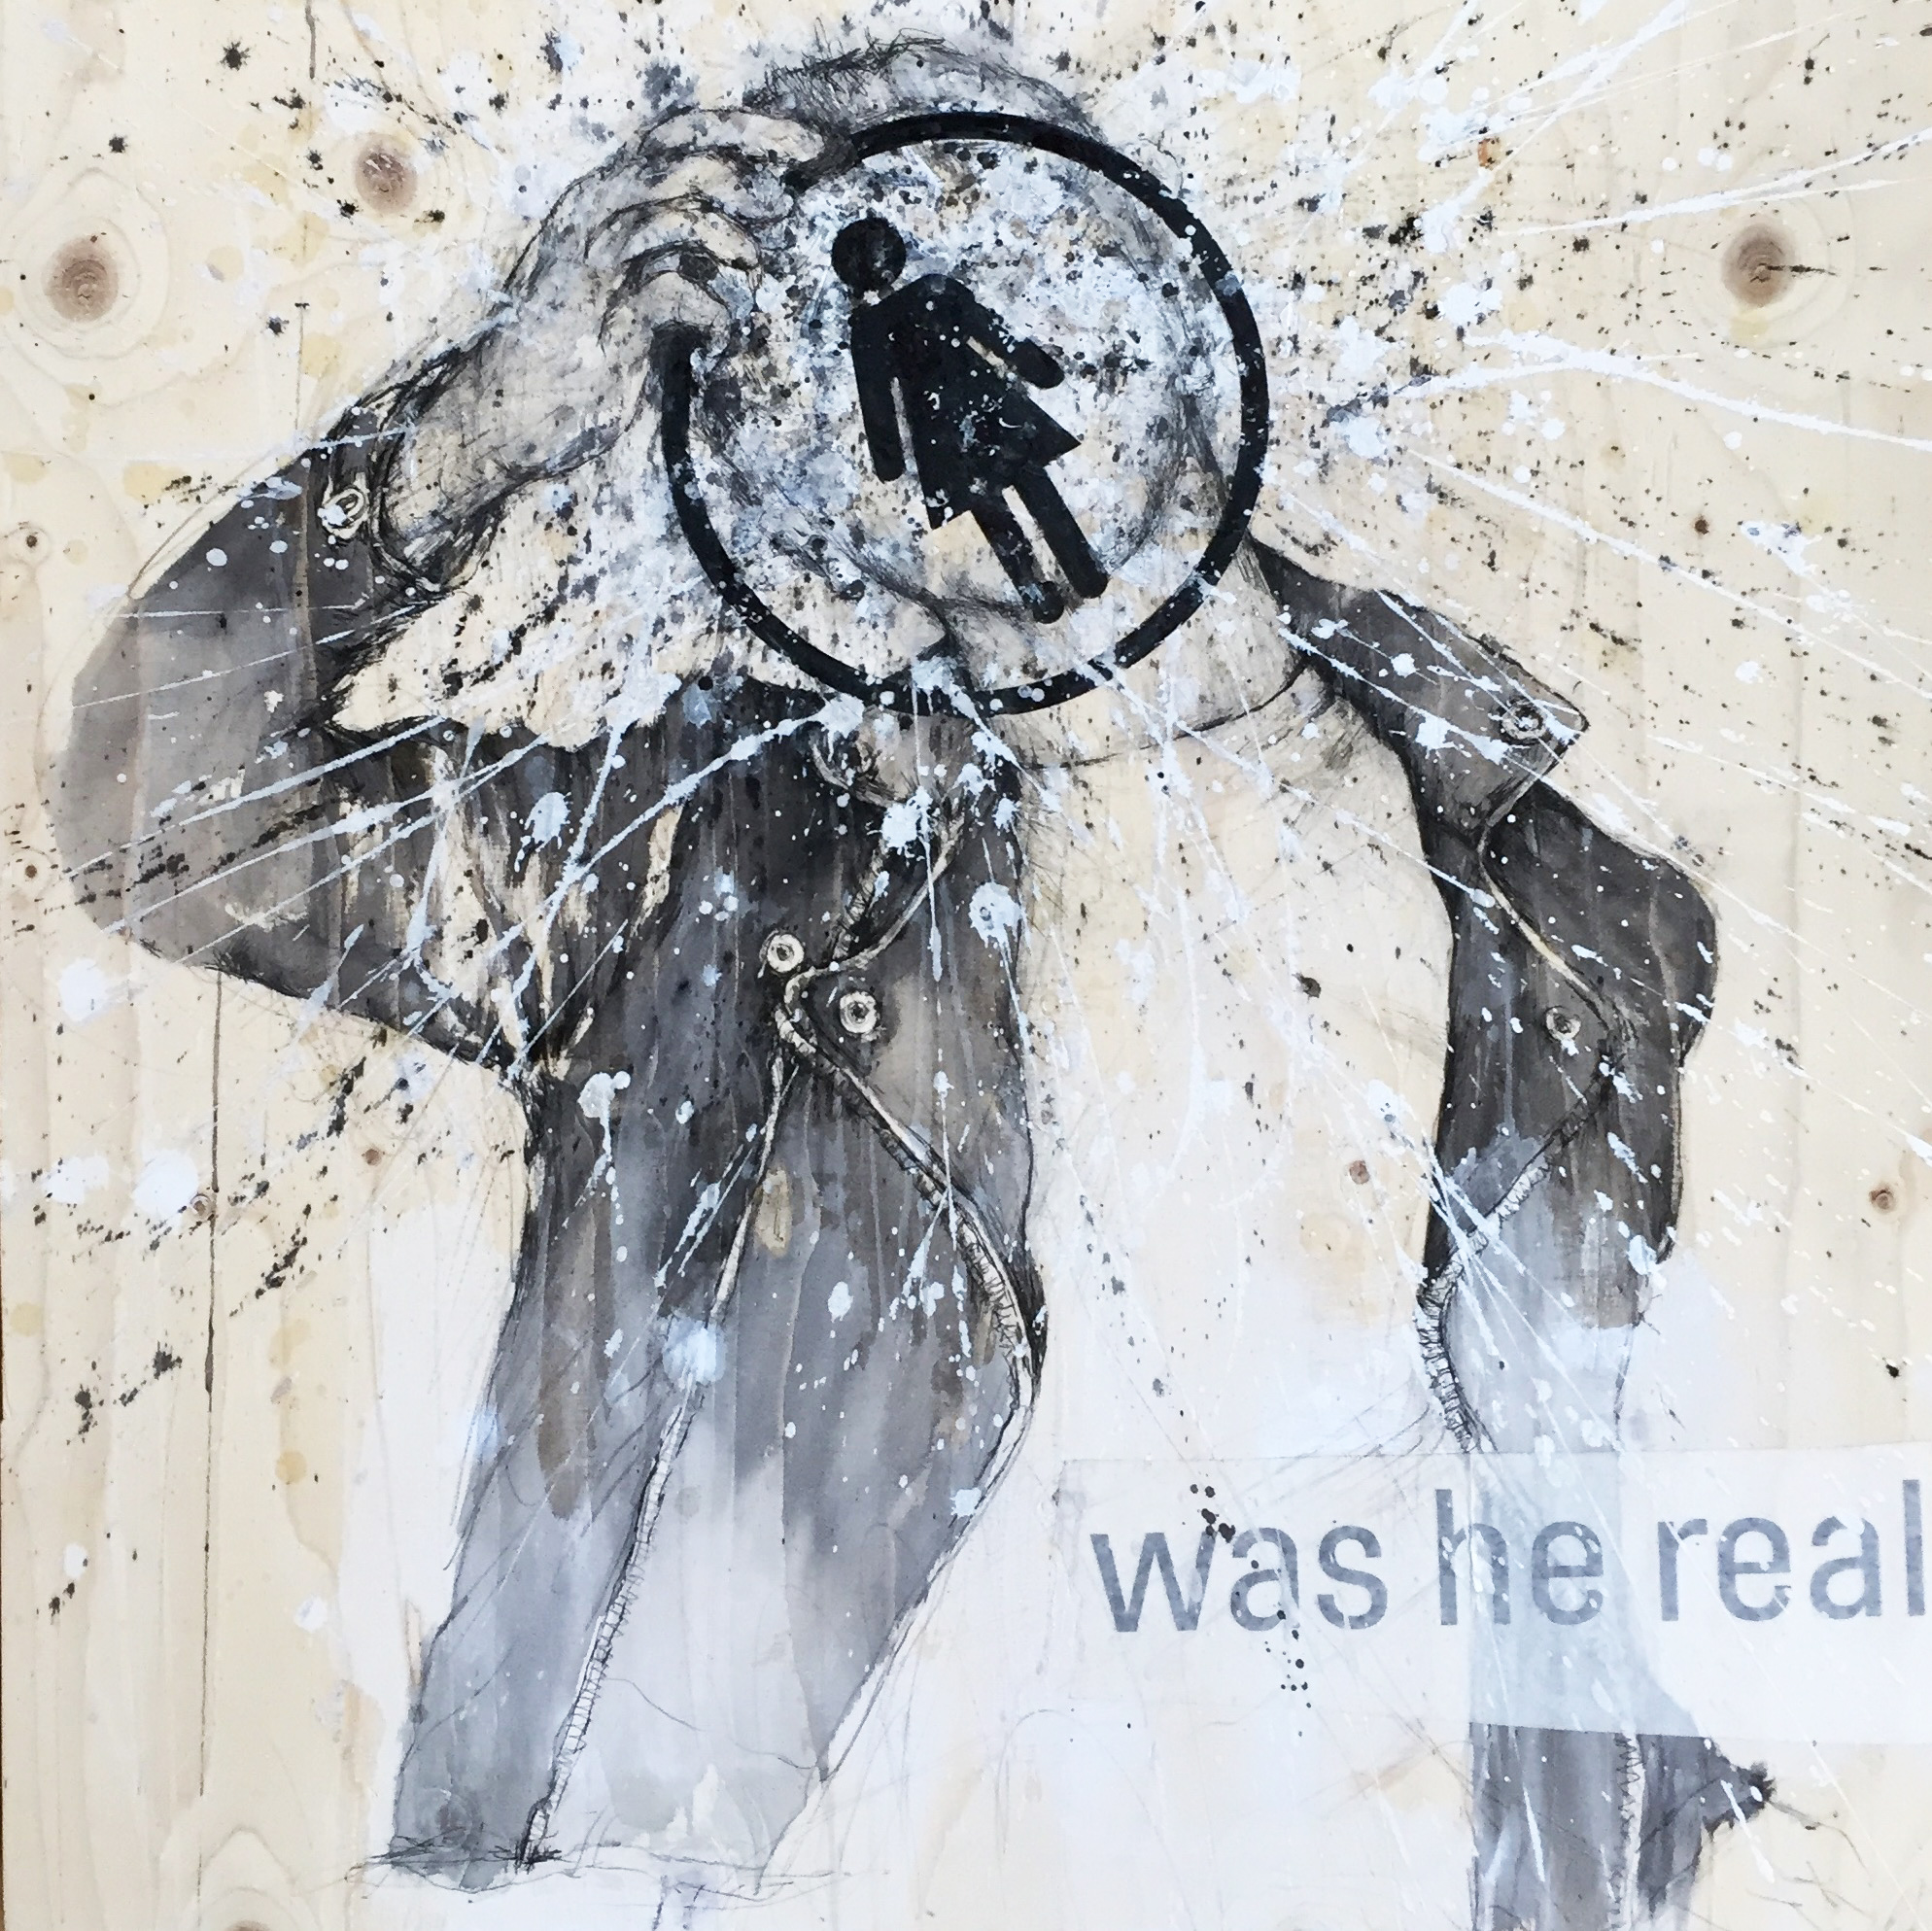 Was he real / 60x60 cm